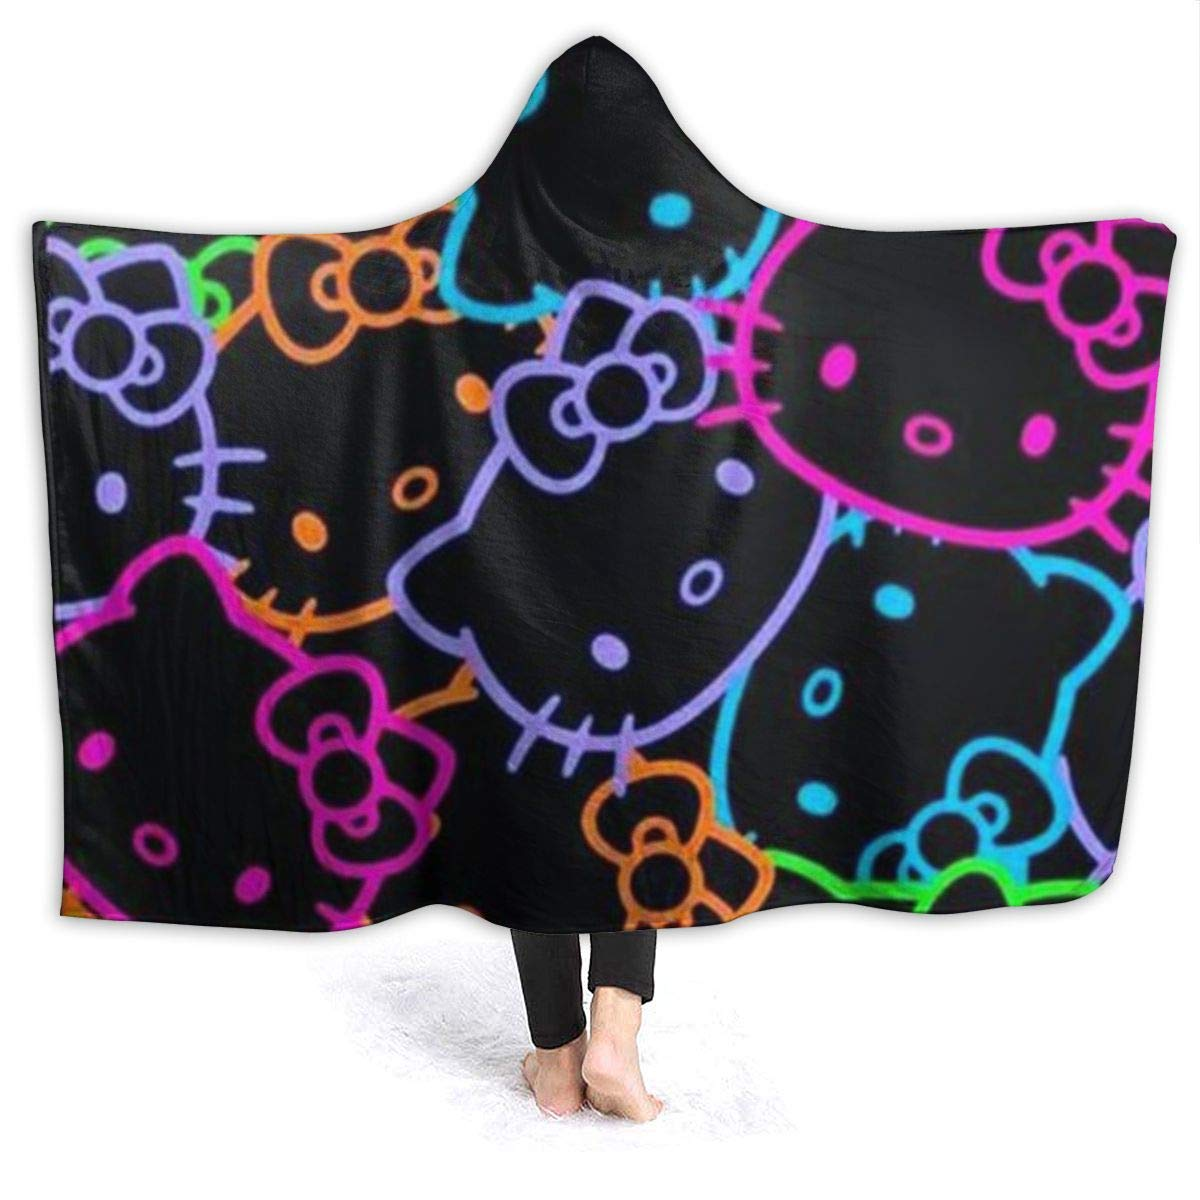 Colorful Hello Kitty Head Portrait Oversized Hooded Blanket Flannel Super Soft Cape Wrap Wearable Cuddle Multi Size Optional by Criss